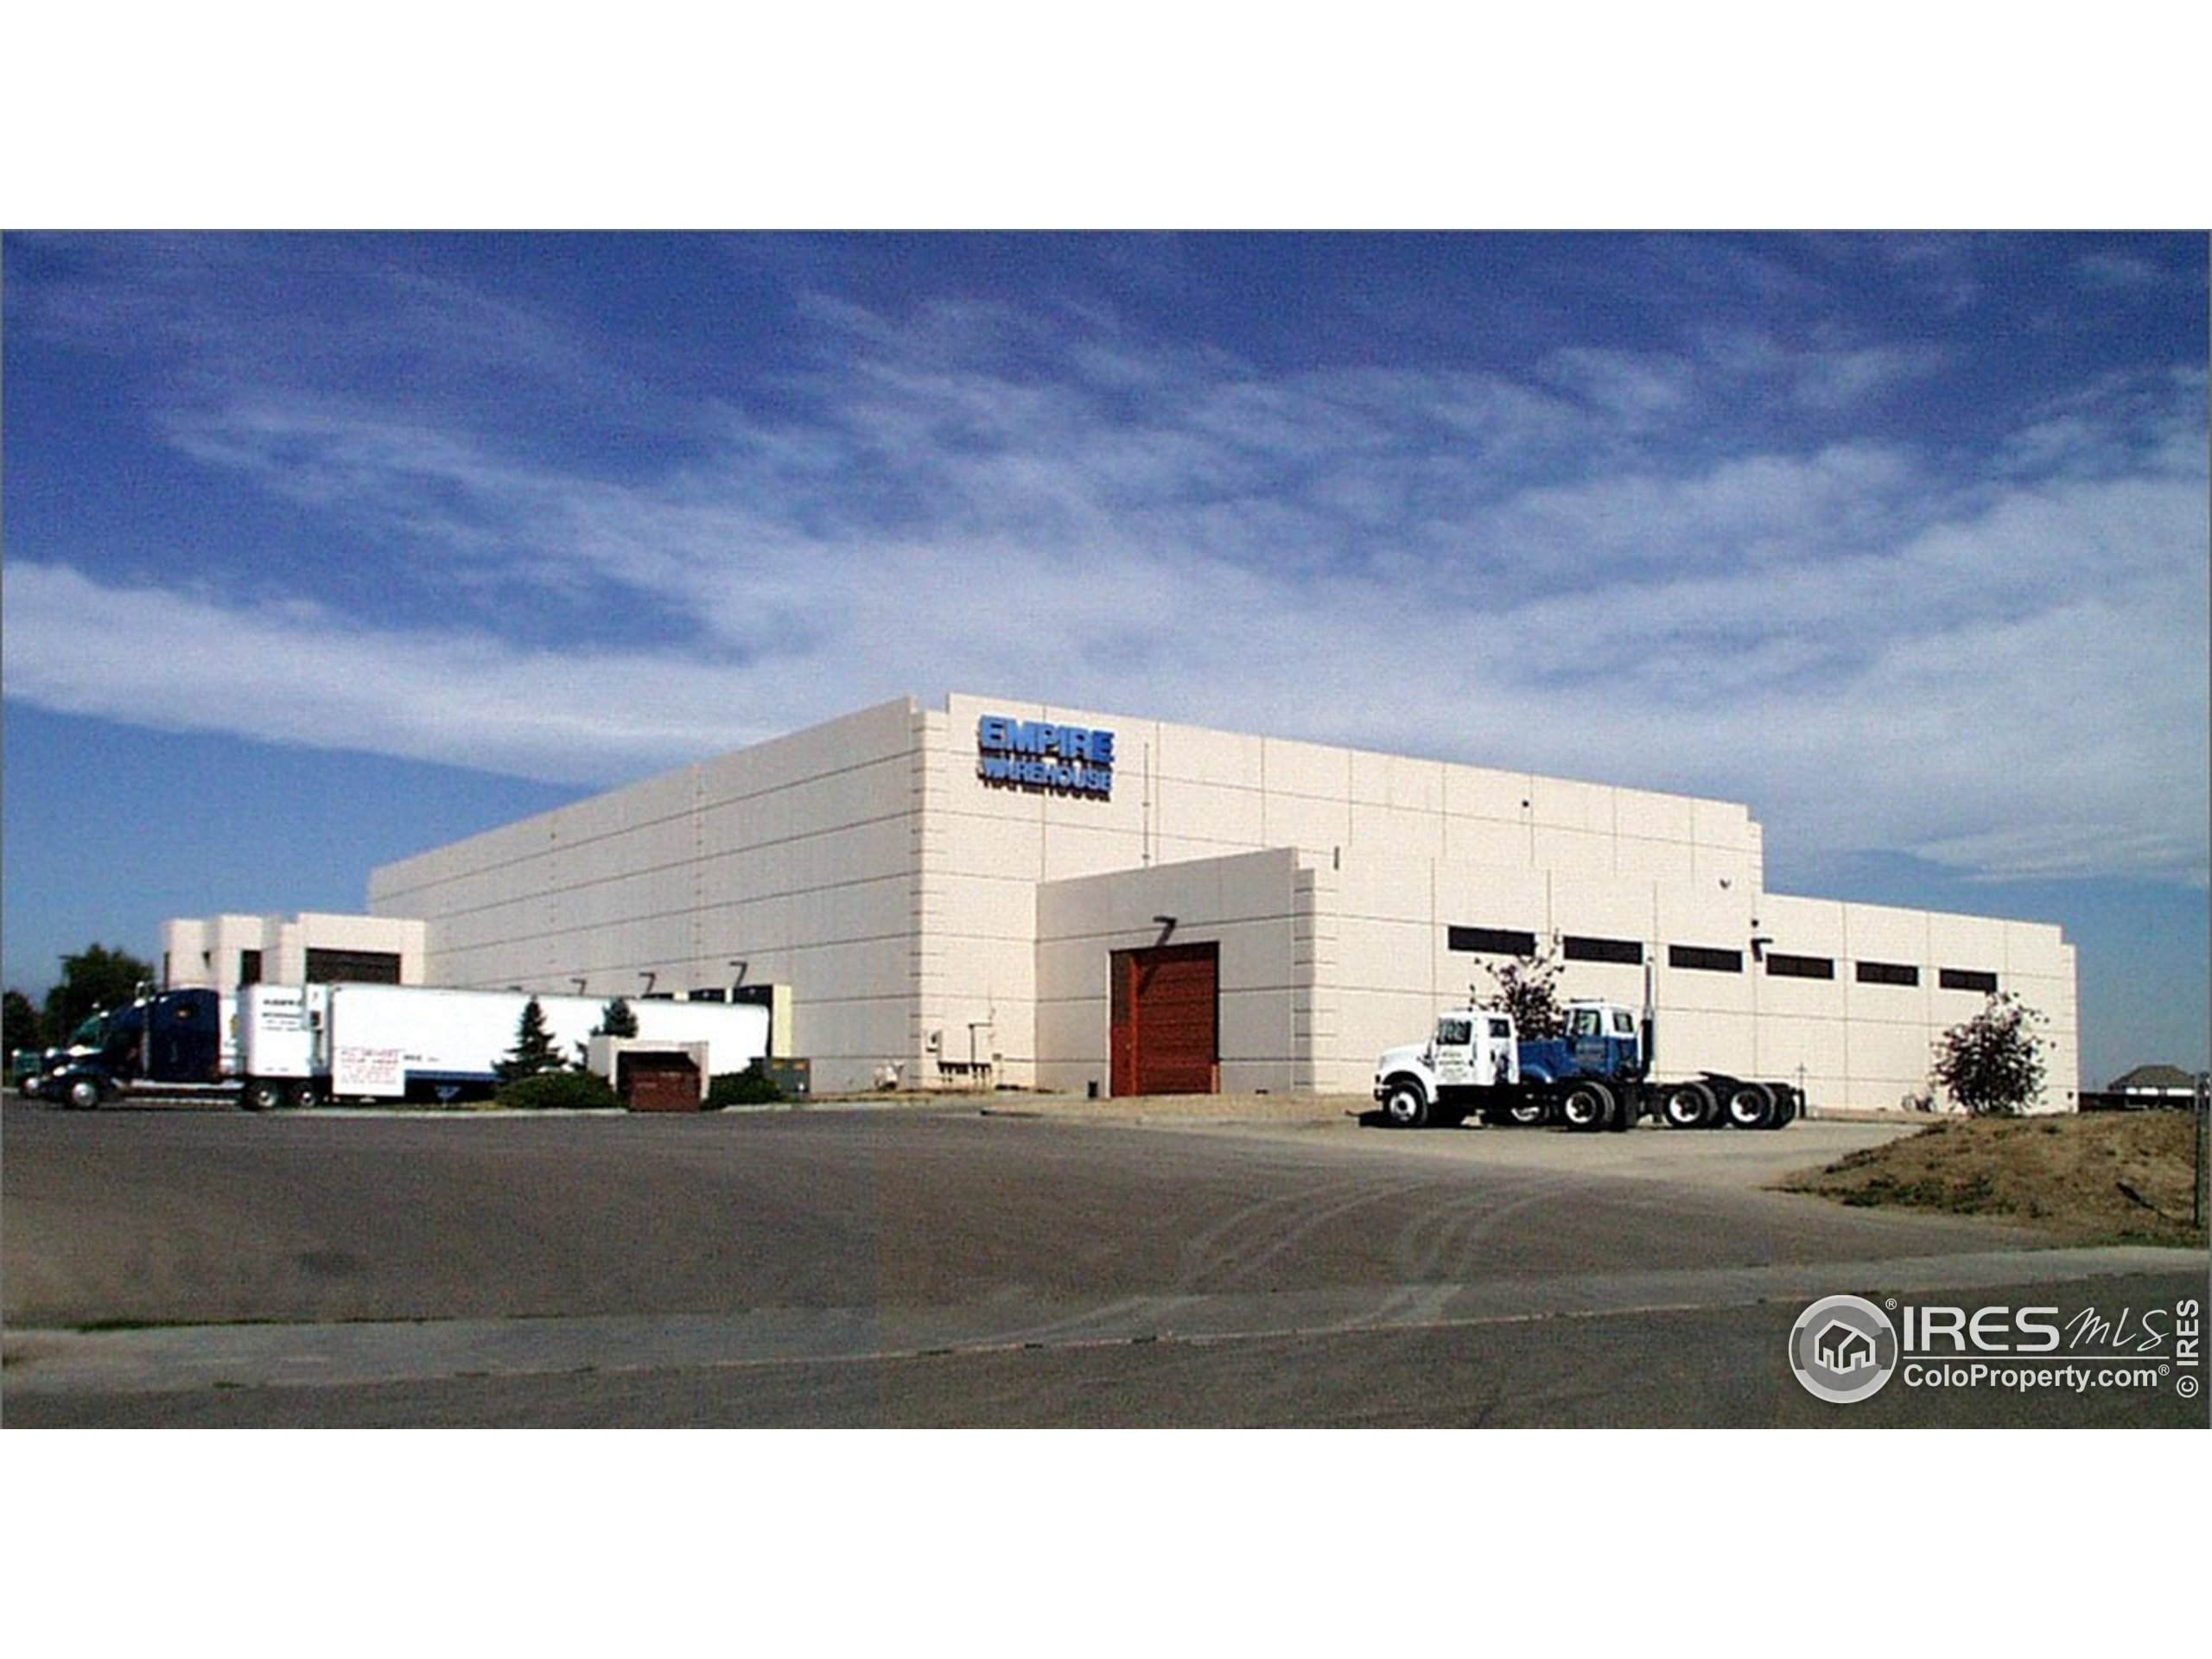 5591 Homeward Dr, Timnath, CO 80547 (MLS #920589) :: Wheelhouse Realty